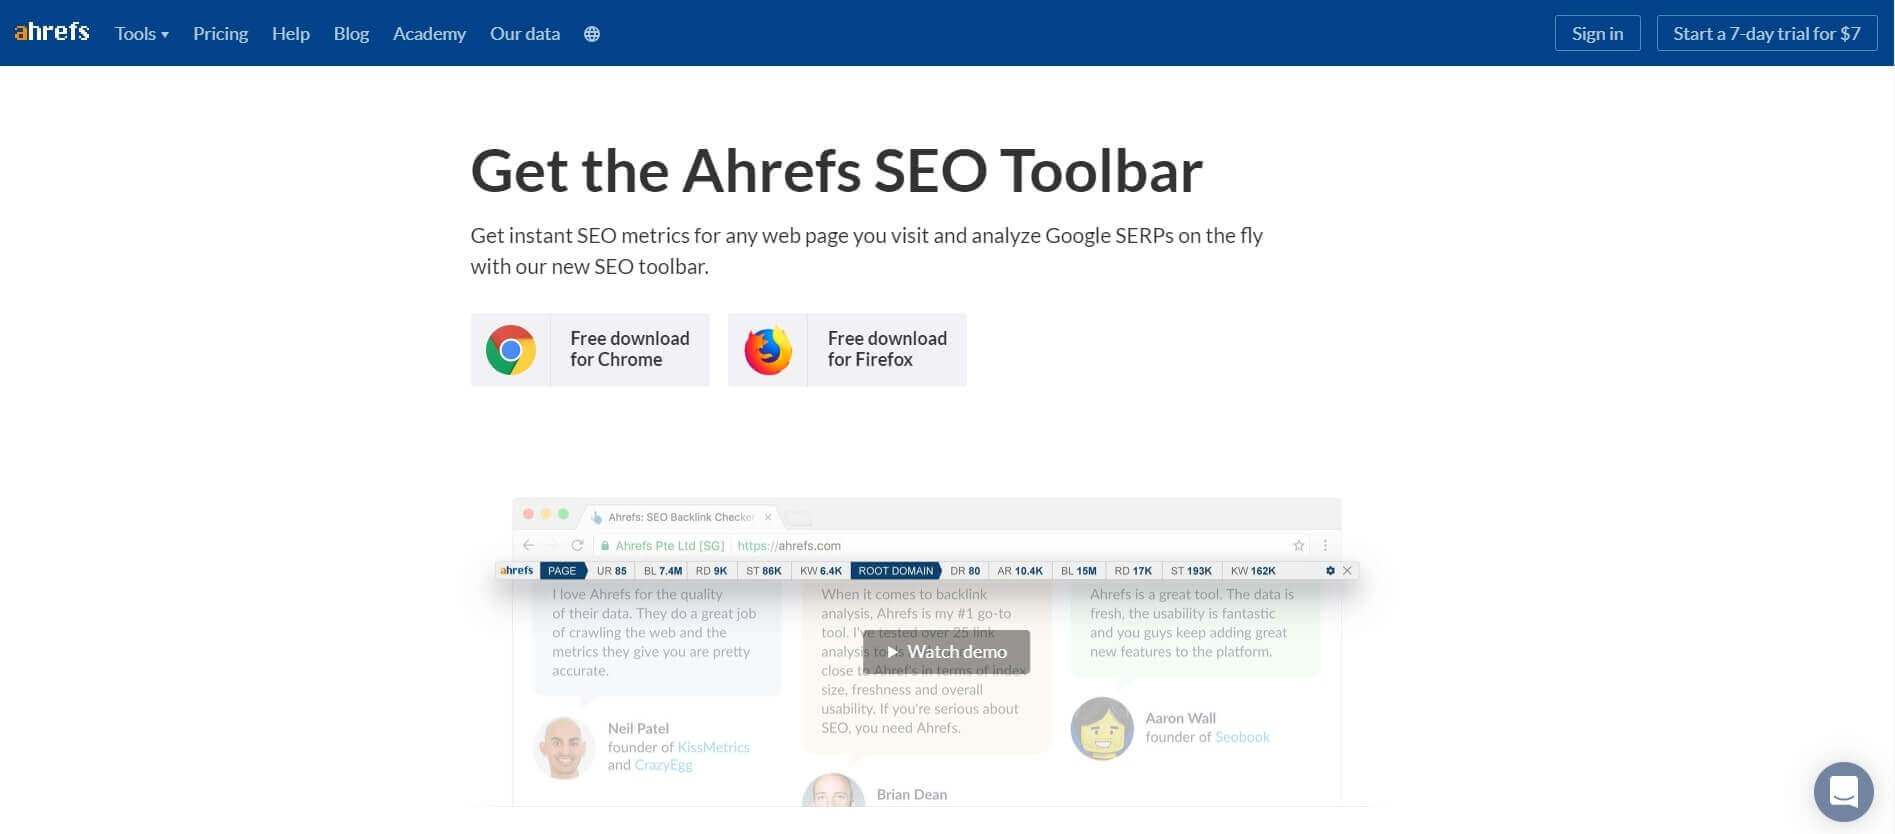 A preview of Ahrefs SEO Toolbar browser extension page on the website. It's a free SEO tool for visualizing your technical data.